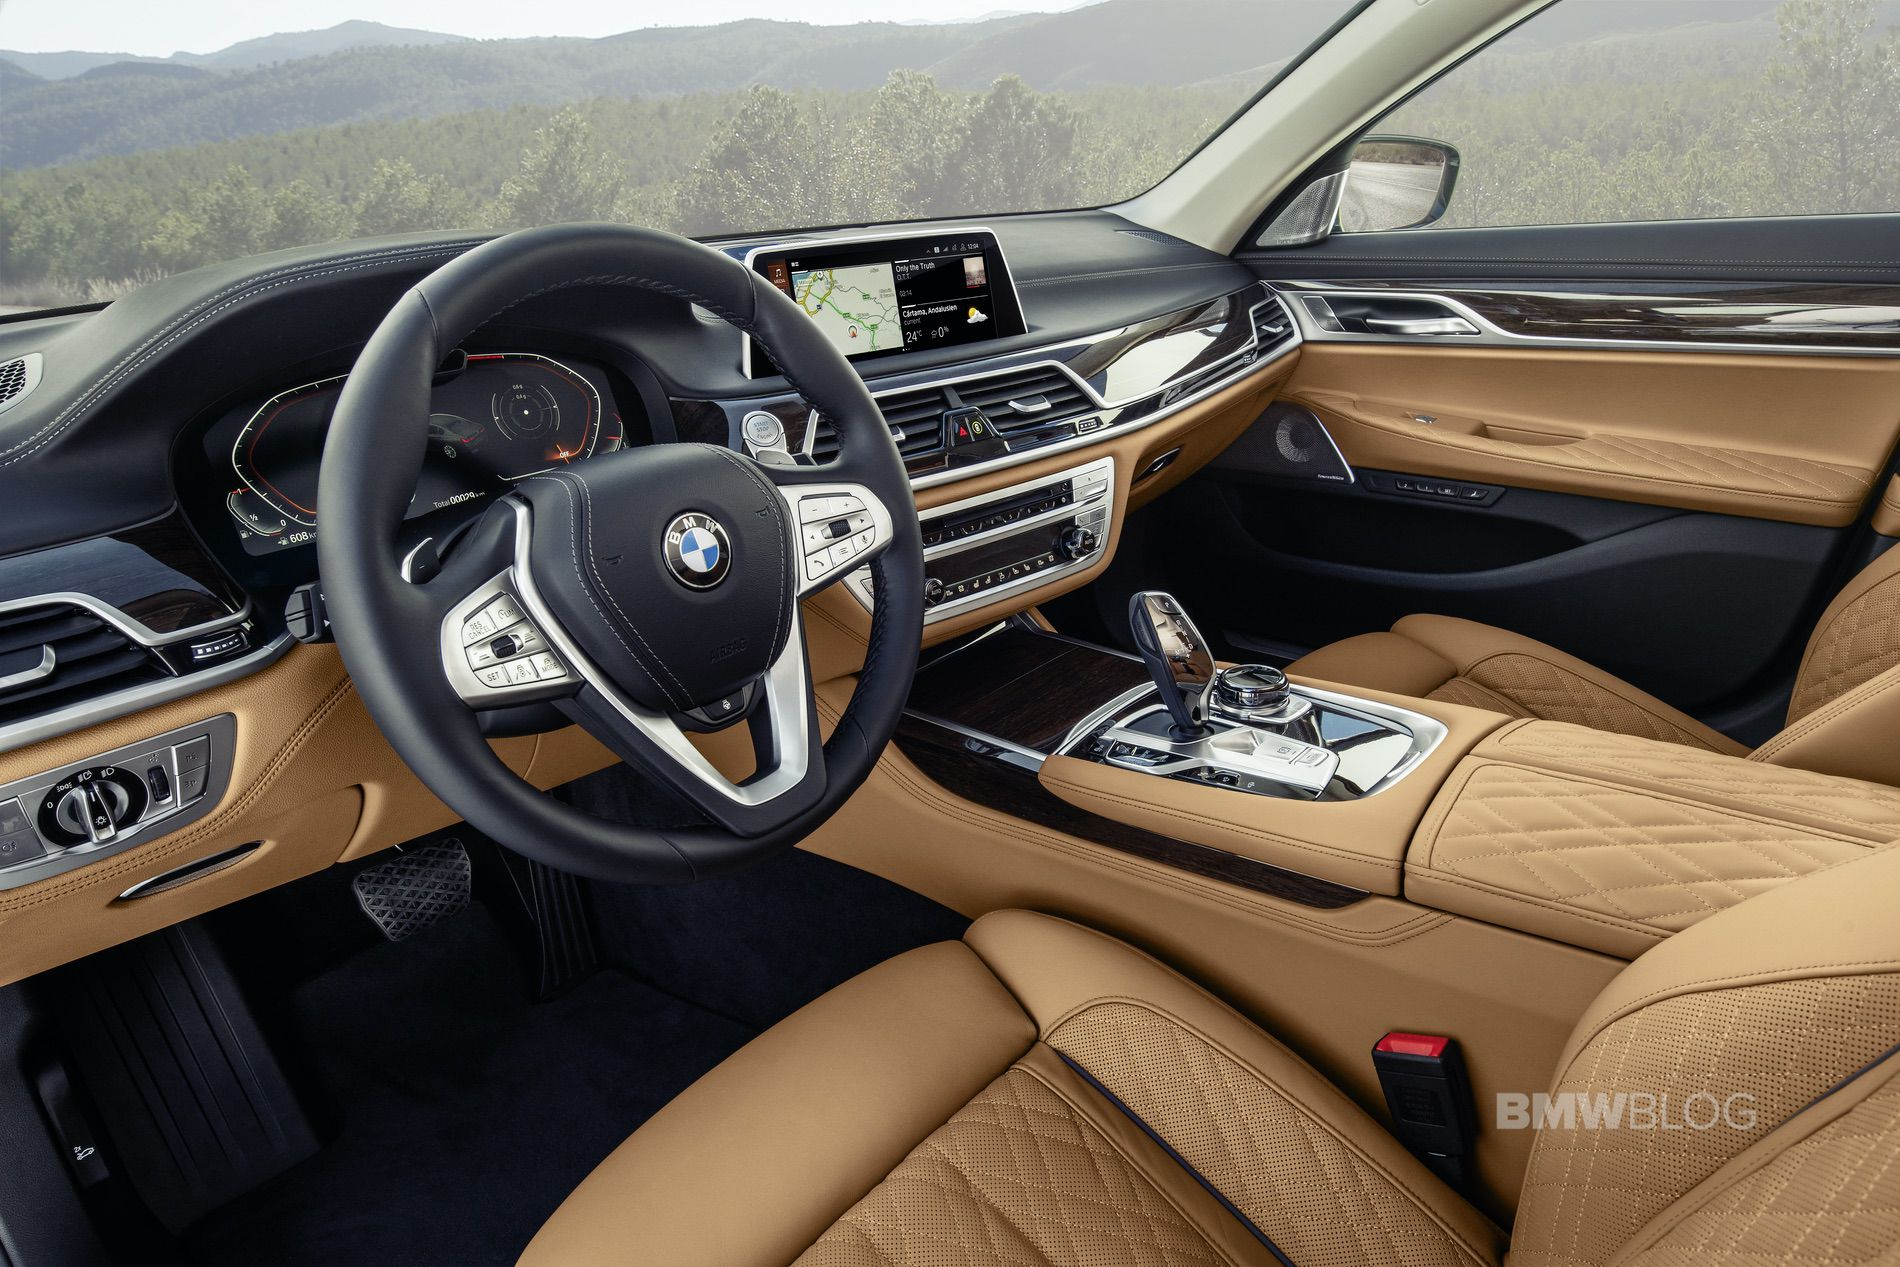 Video Carwow Reviews The New Bmw 7 Series Lci